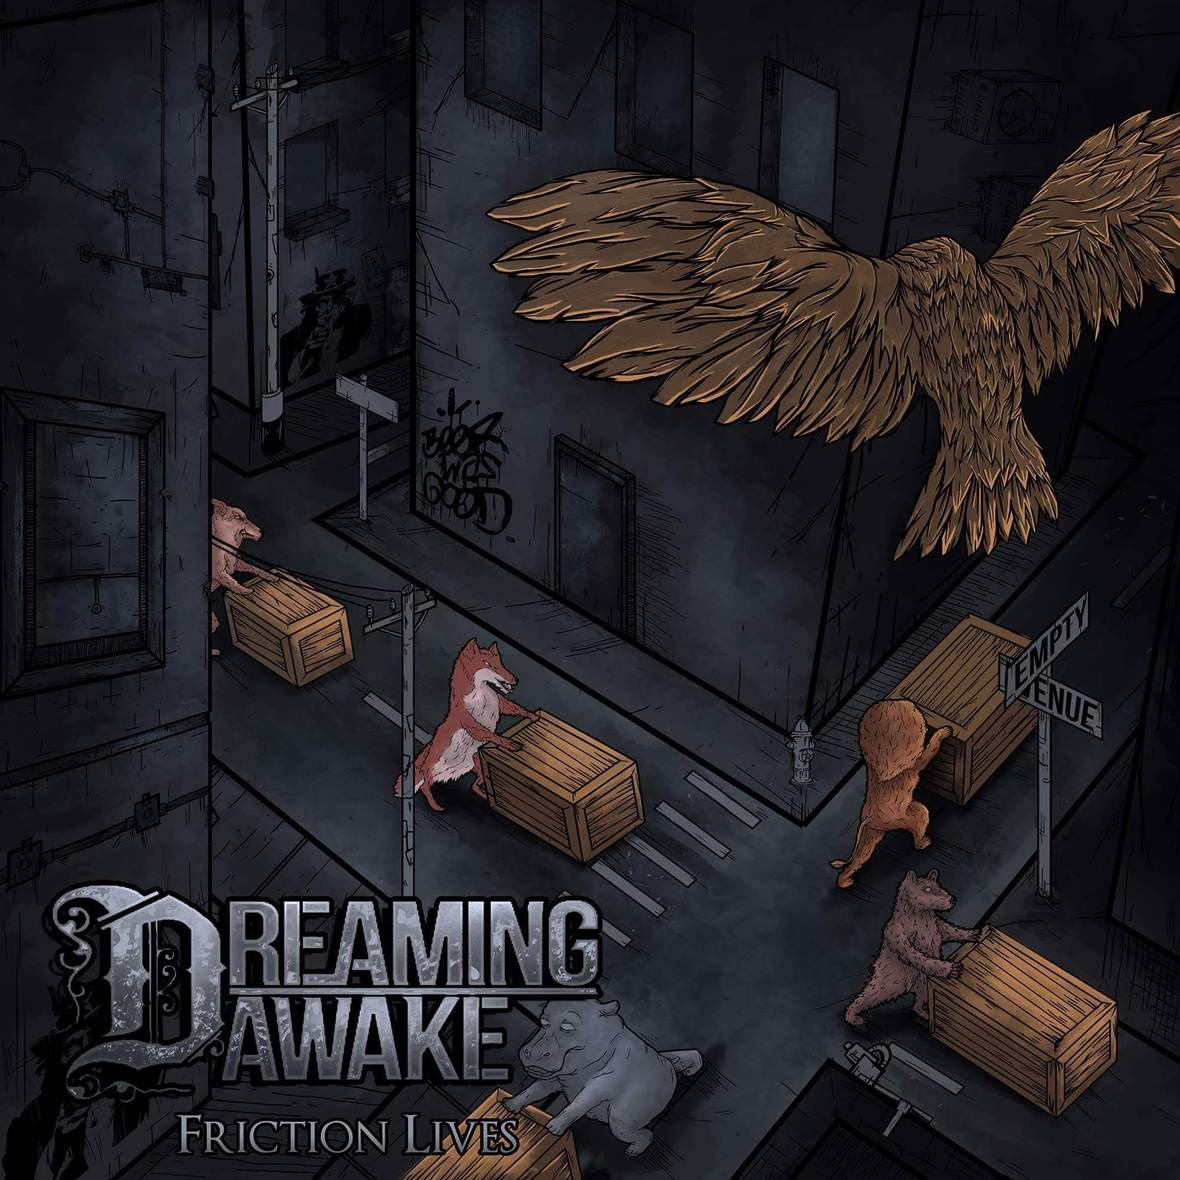 DREAMING AWAKE - Releases Music Video & SIgns With Imminence Records